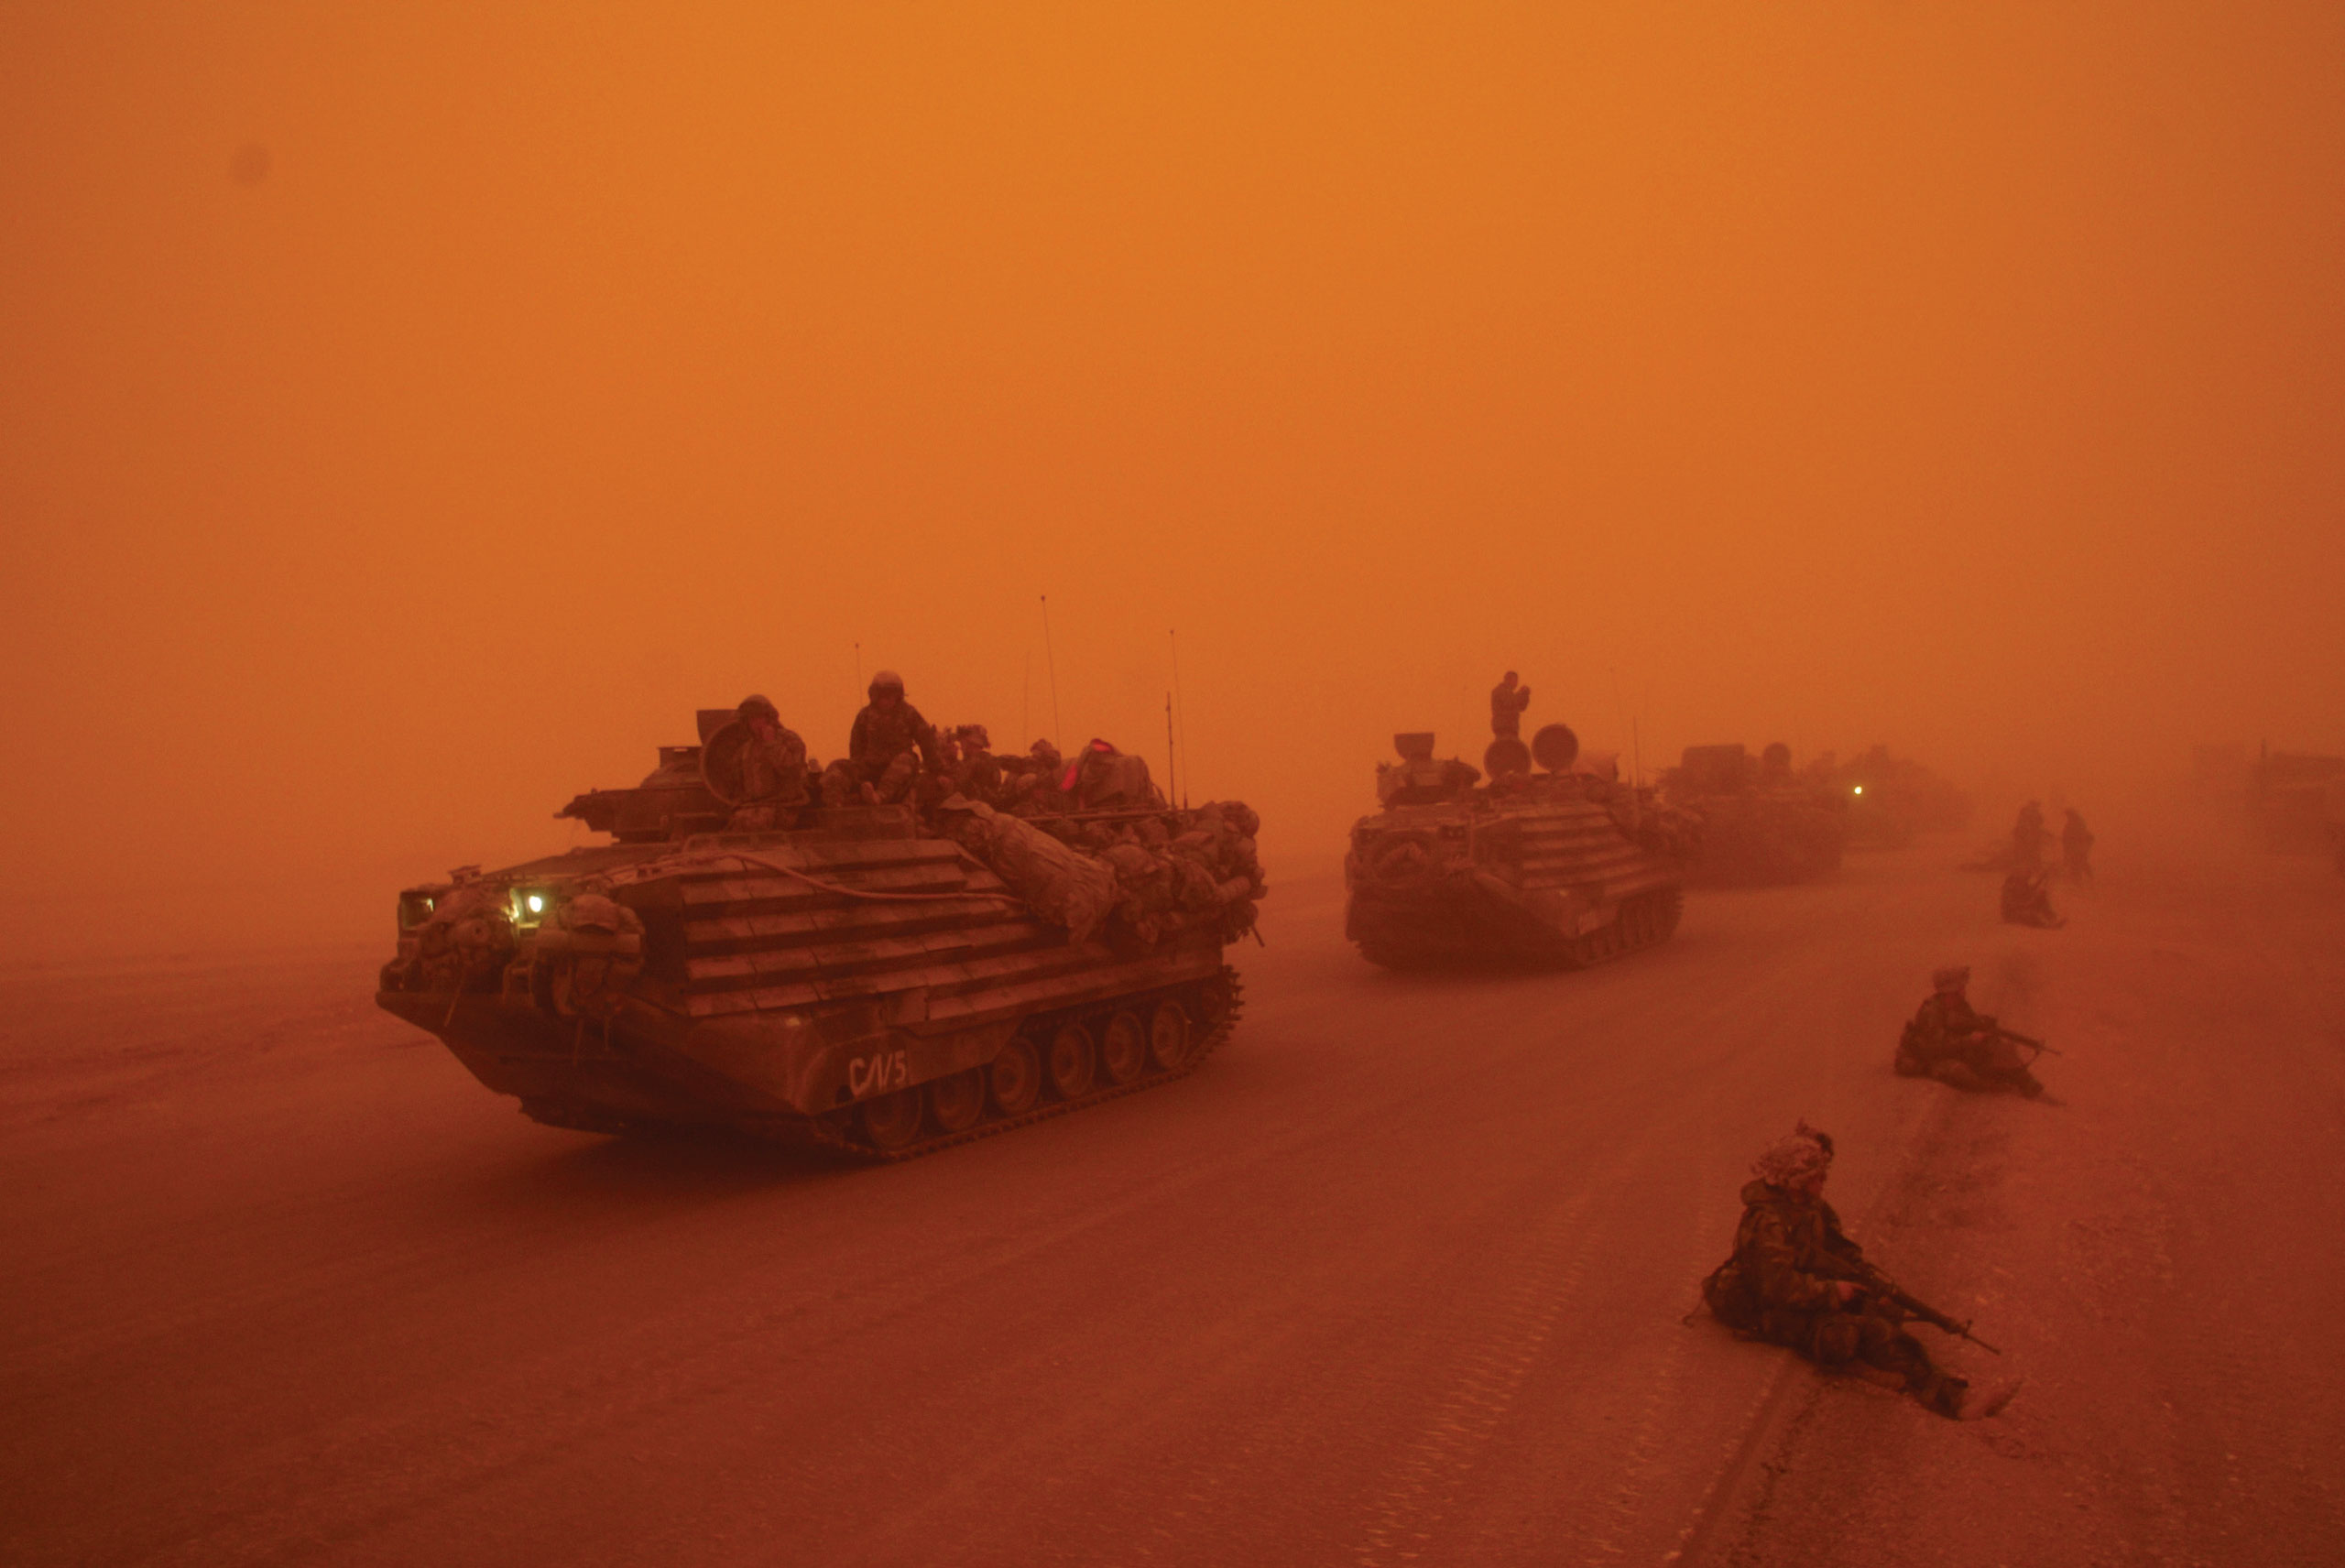 A severe sandstorm blanketed a convoy from the Headquarters Battalion of the 1st Marine Division north of the Euphrates River in Iraq, on March 25, 2003.